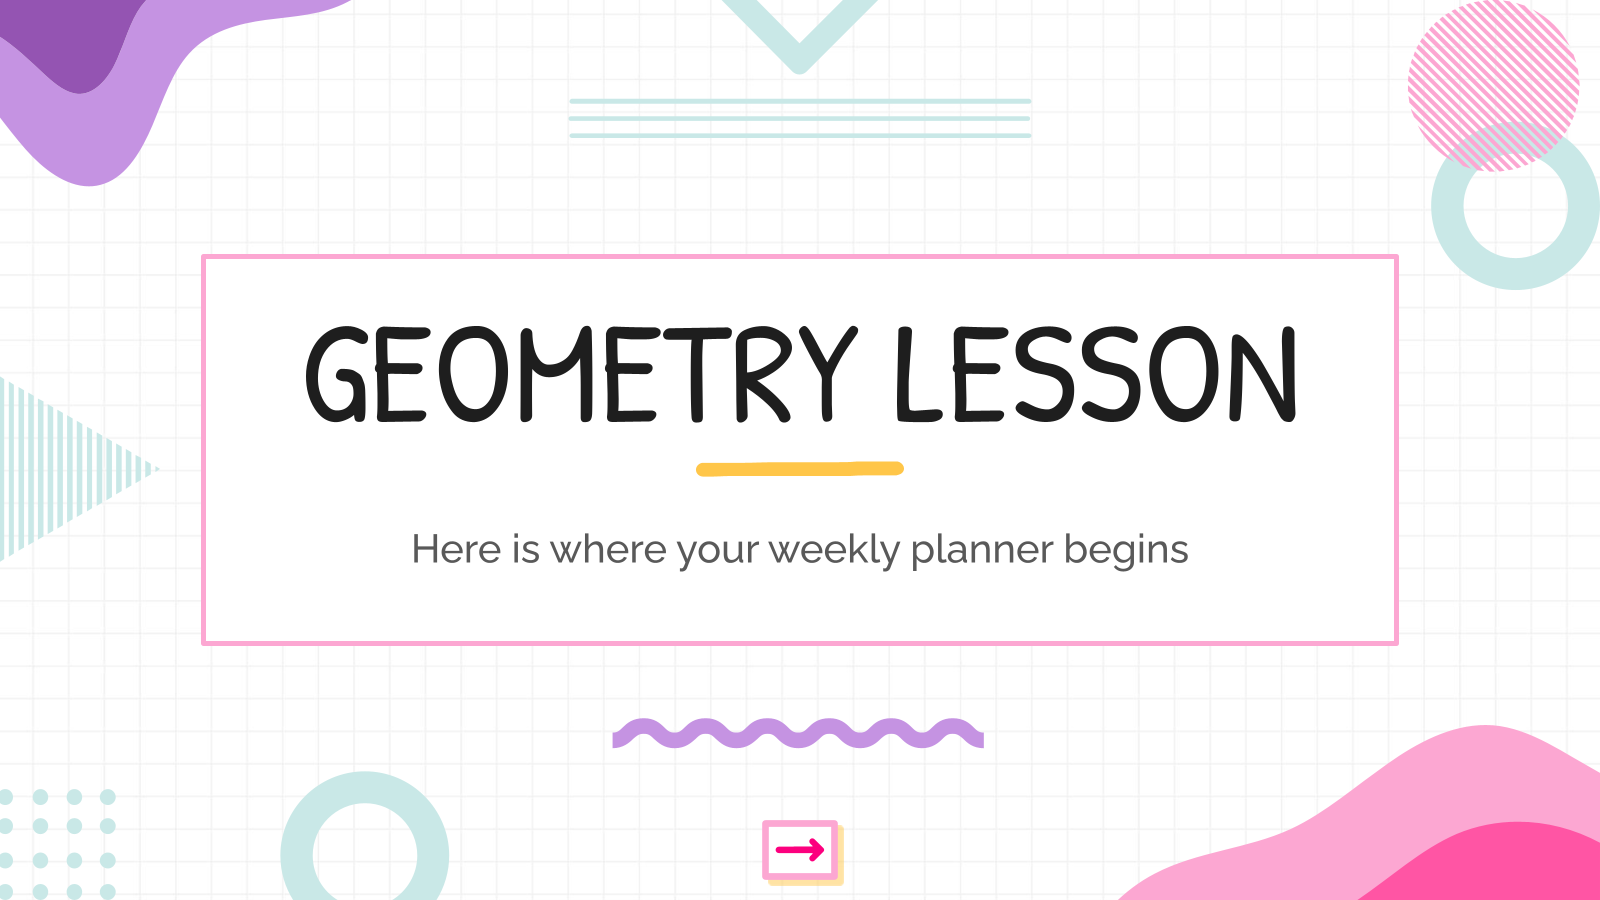 Geometry Lesson presentation template